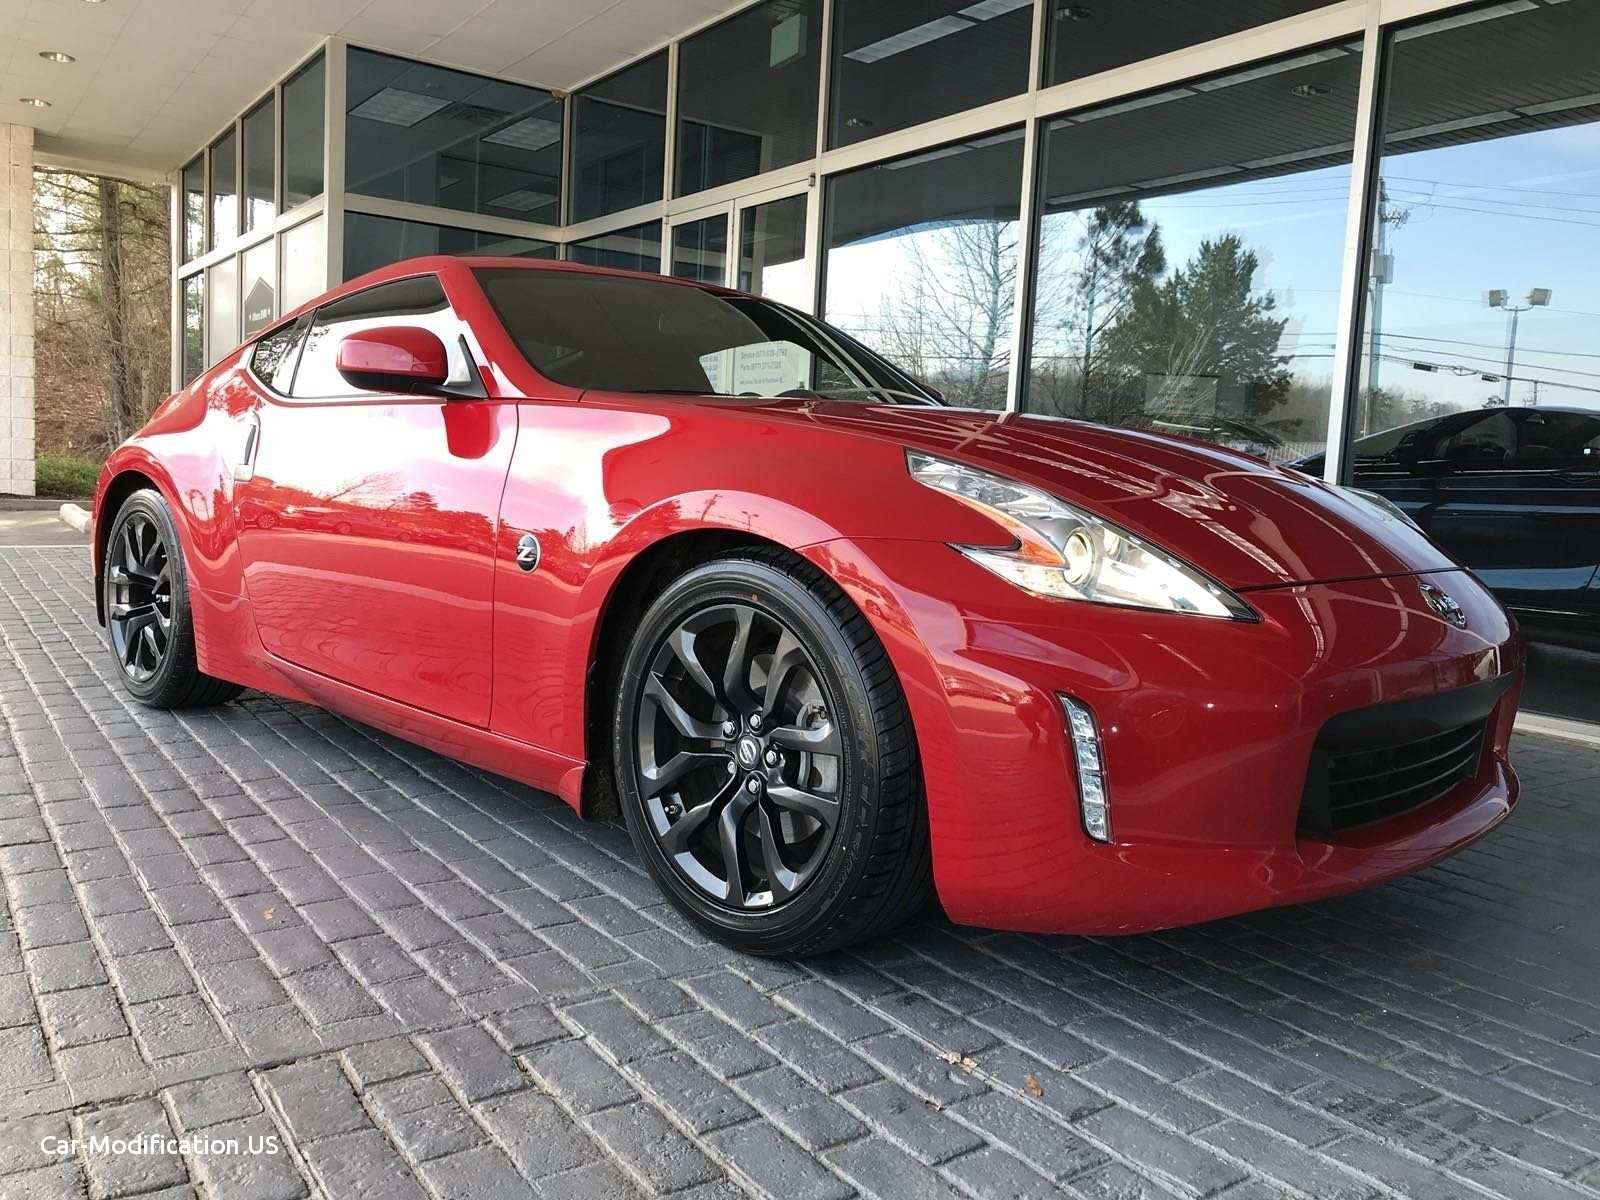 55 The Best 2020 Nissan Z35 Review Price And Release Date